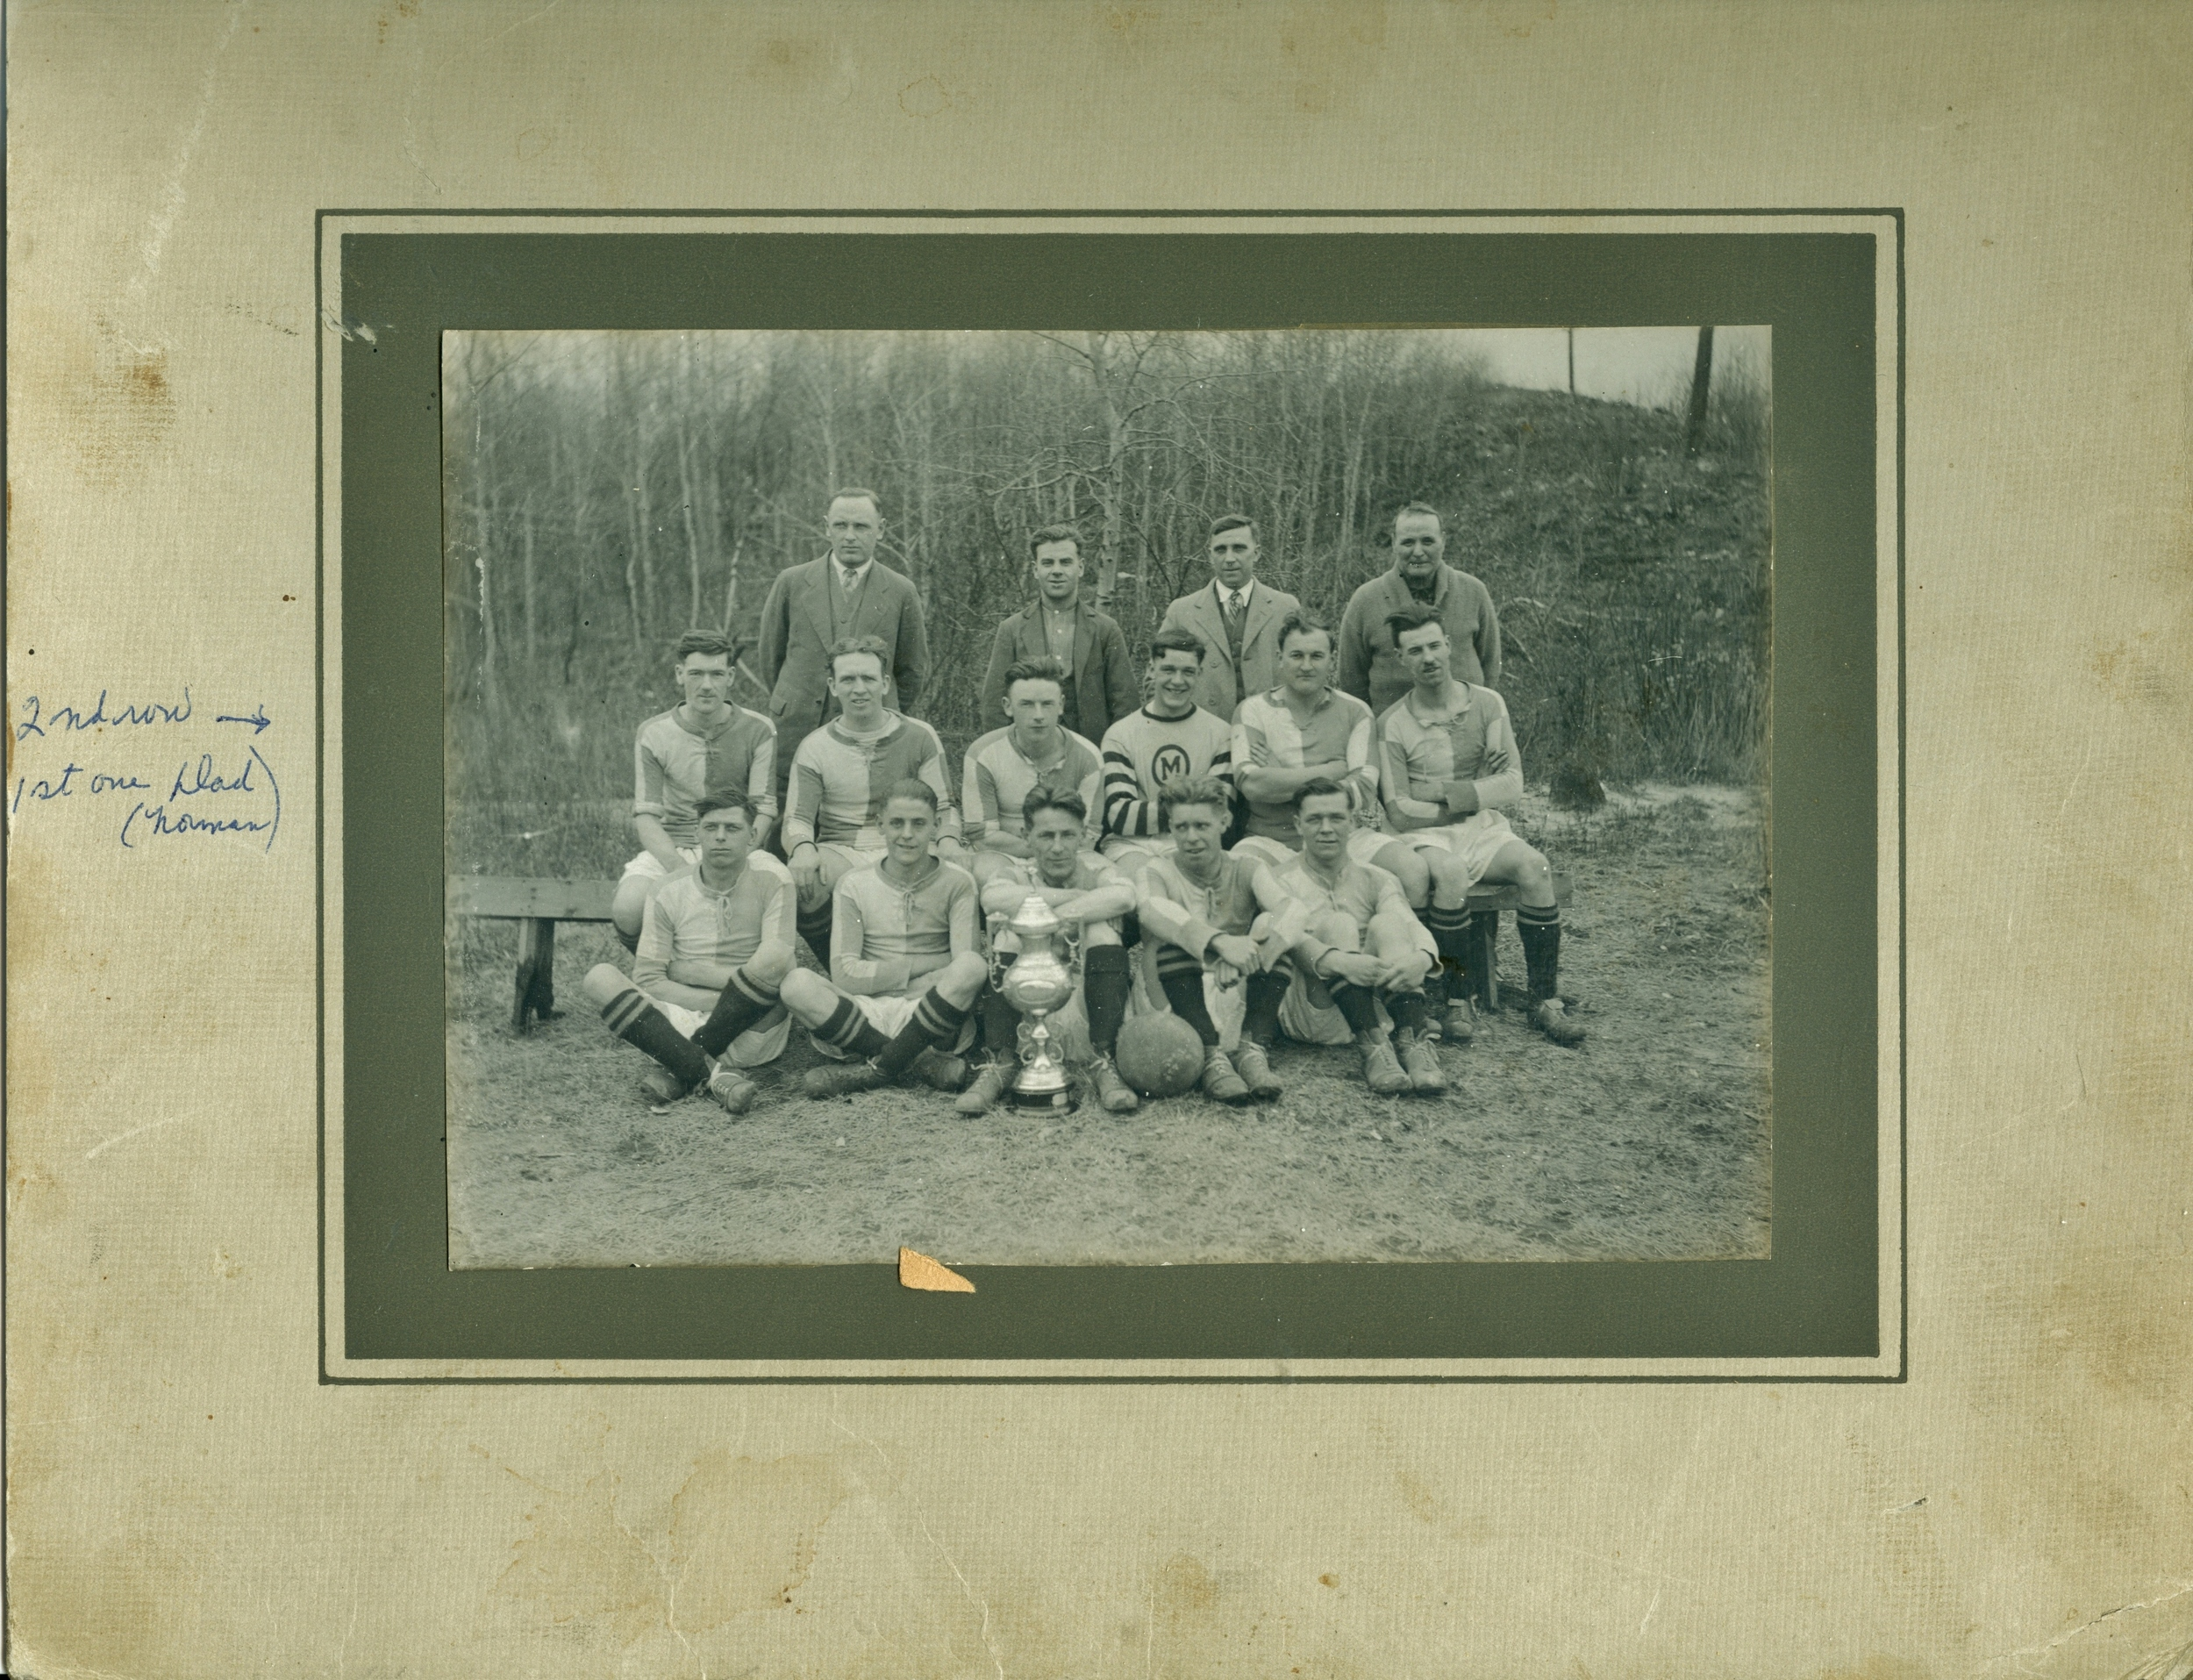 """Deloro Soccor Team  1930 Front row left:      Tommy Cousins,      right end, Bill Brown, next to him, George Brooks. Second row, left, Norman Hipson.  From Brenda Brooks: """"George Brooks, my father, who came to Deloro 1923, and in 1922 he played for the Bognor Rocks in England and won the 1922 Championship in Soccer.""""  Wayne VanVolkenburg writes: Middle row left end is my grandfather Norman Hipson. He came to Marmora in 1928... so the photo is 1928 or later."""